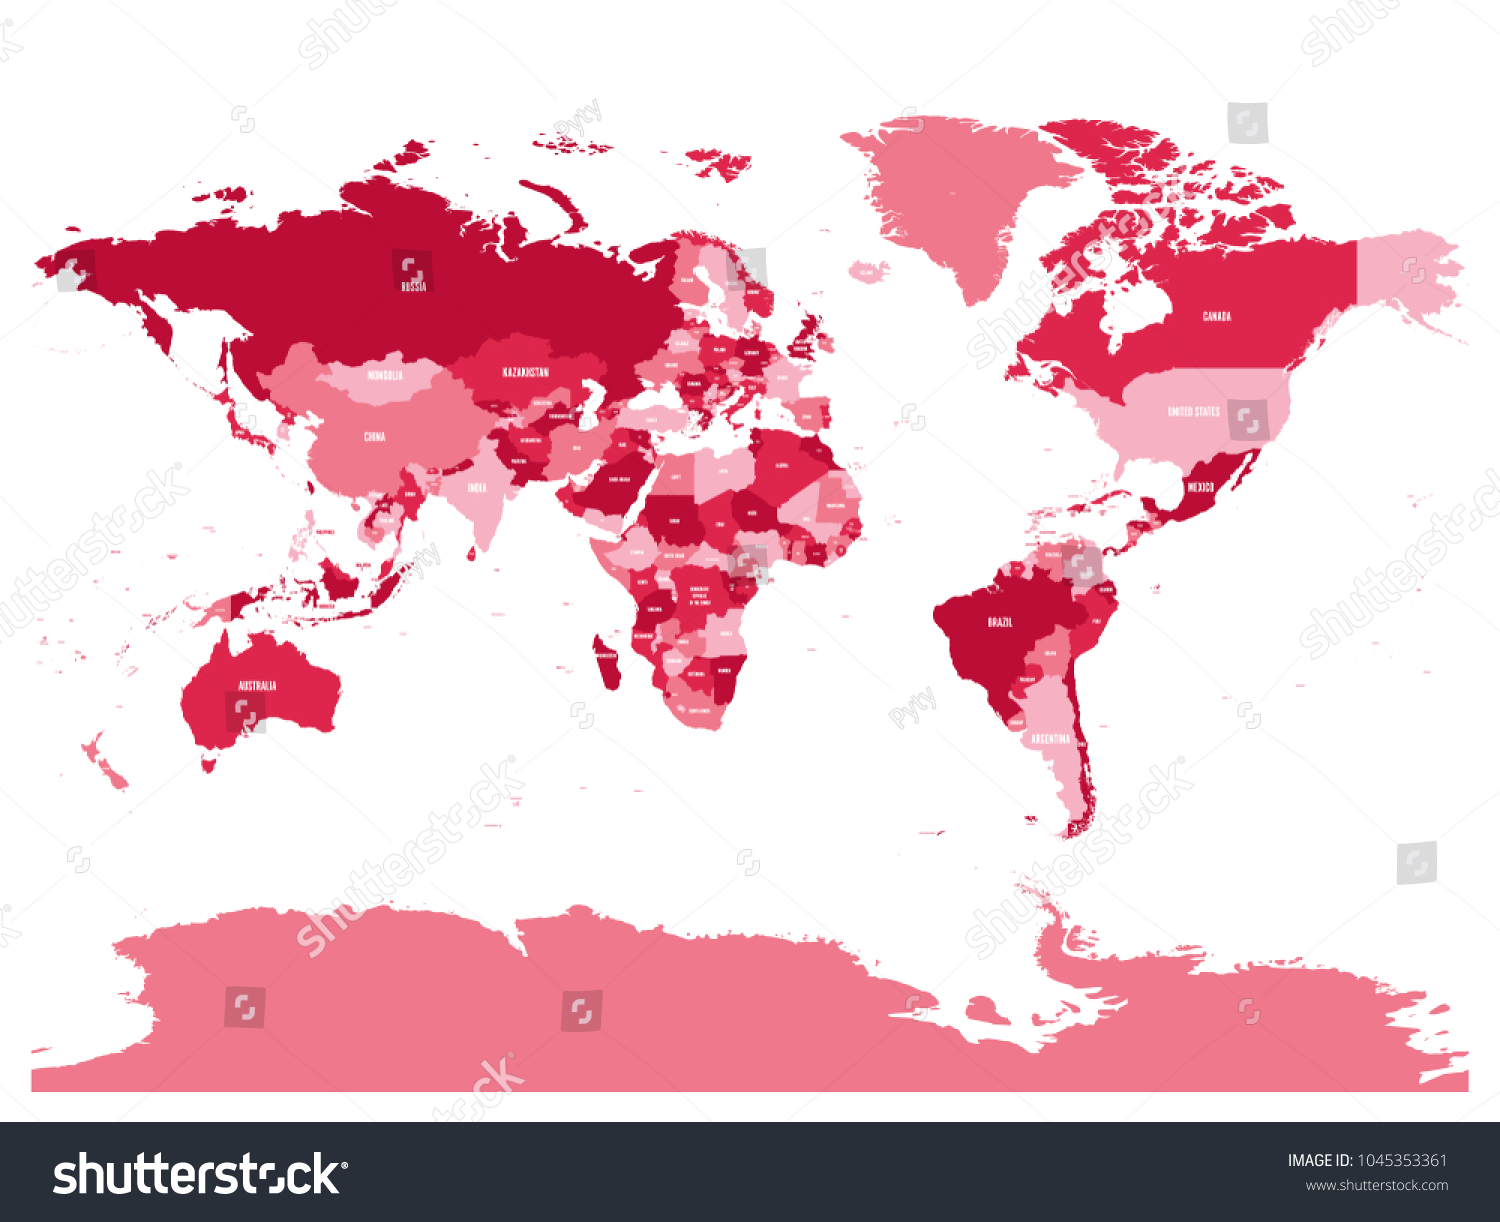 Mirrored Map Of The World.Horizontally Flipped Political Map World Mirror Stock Vector